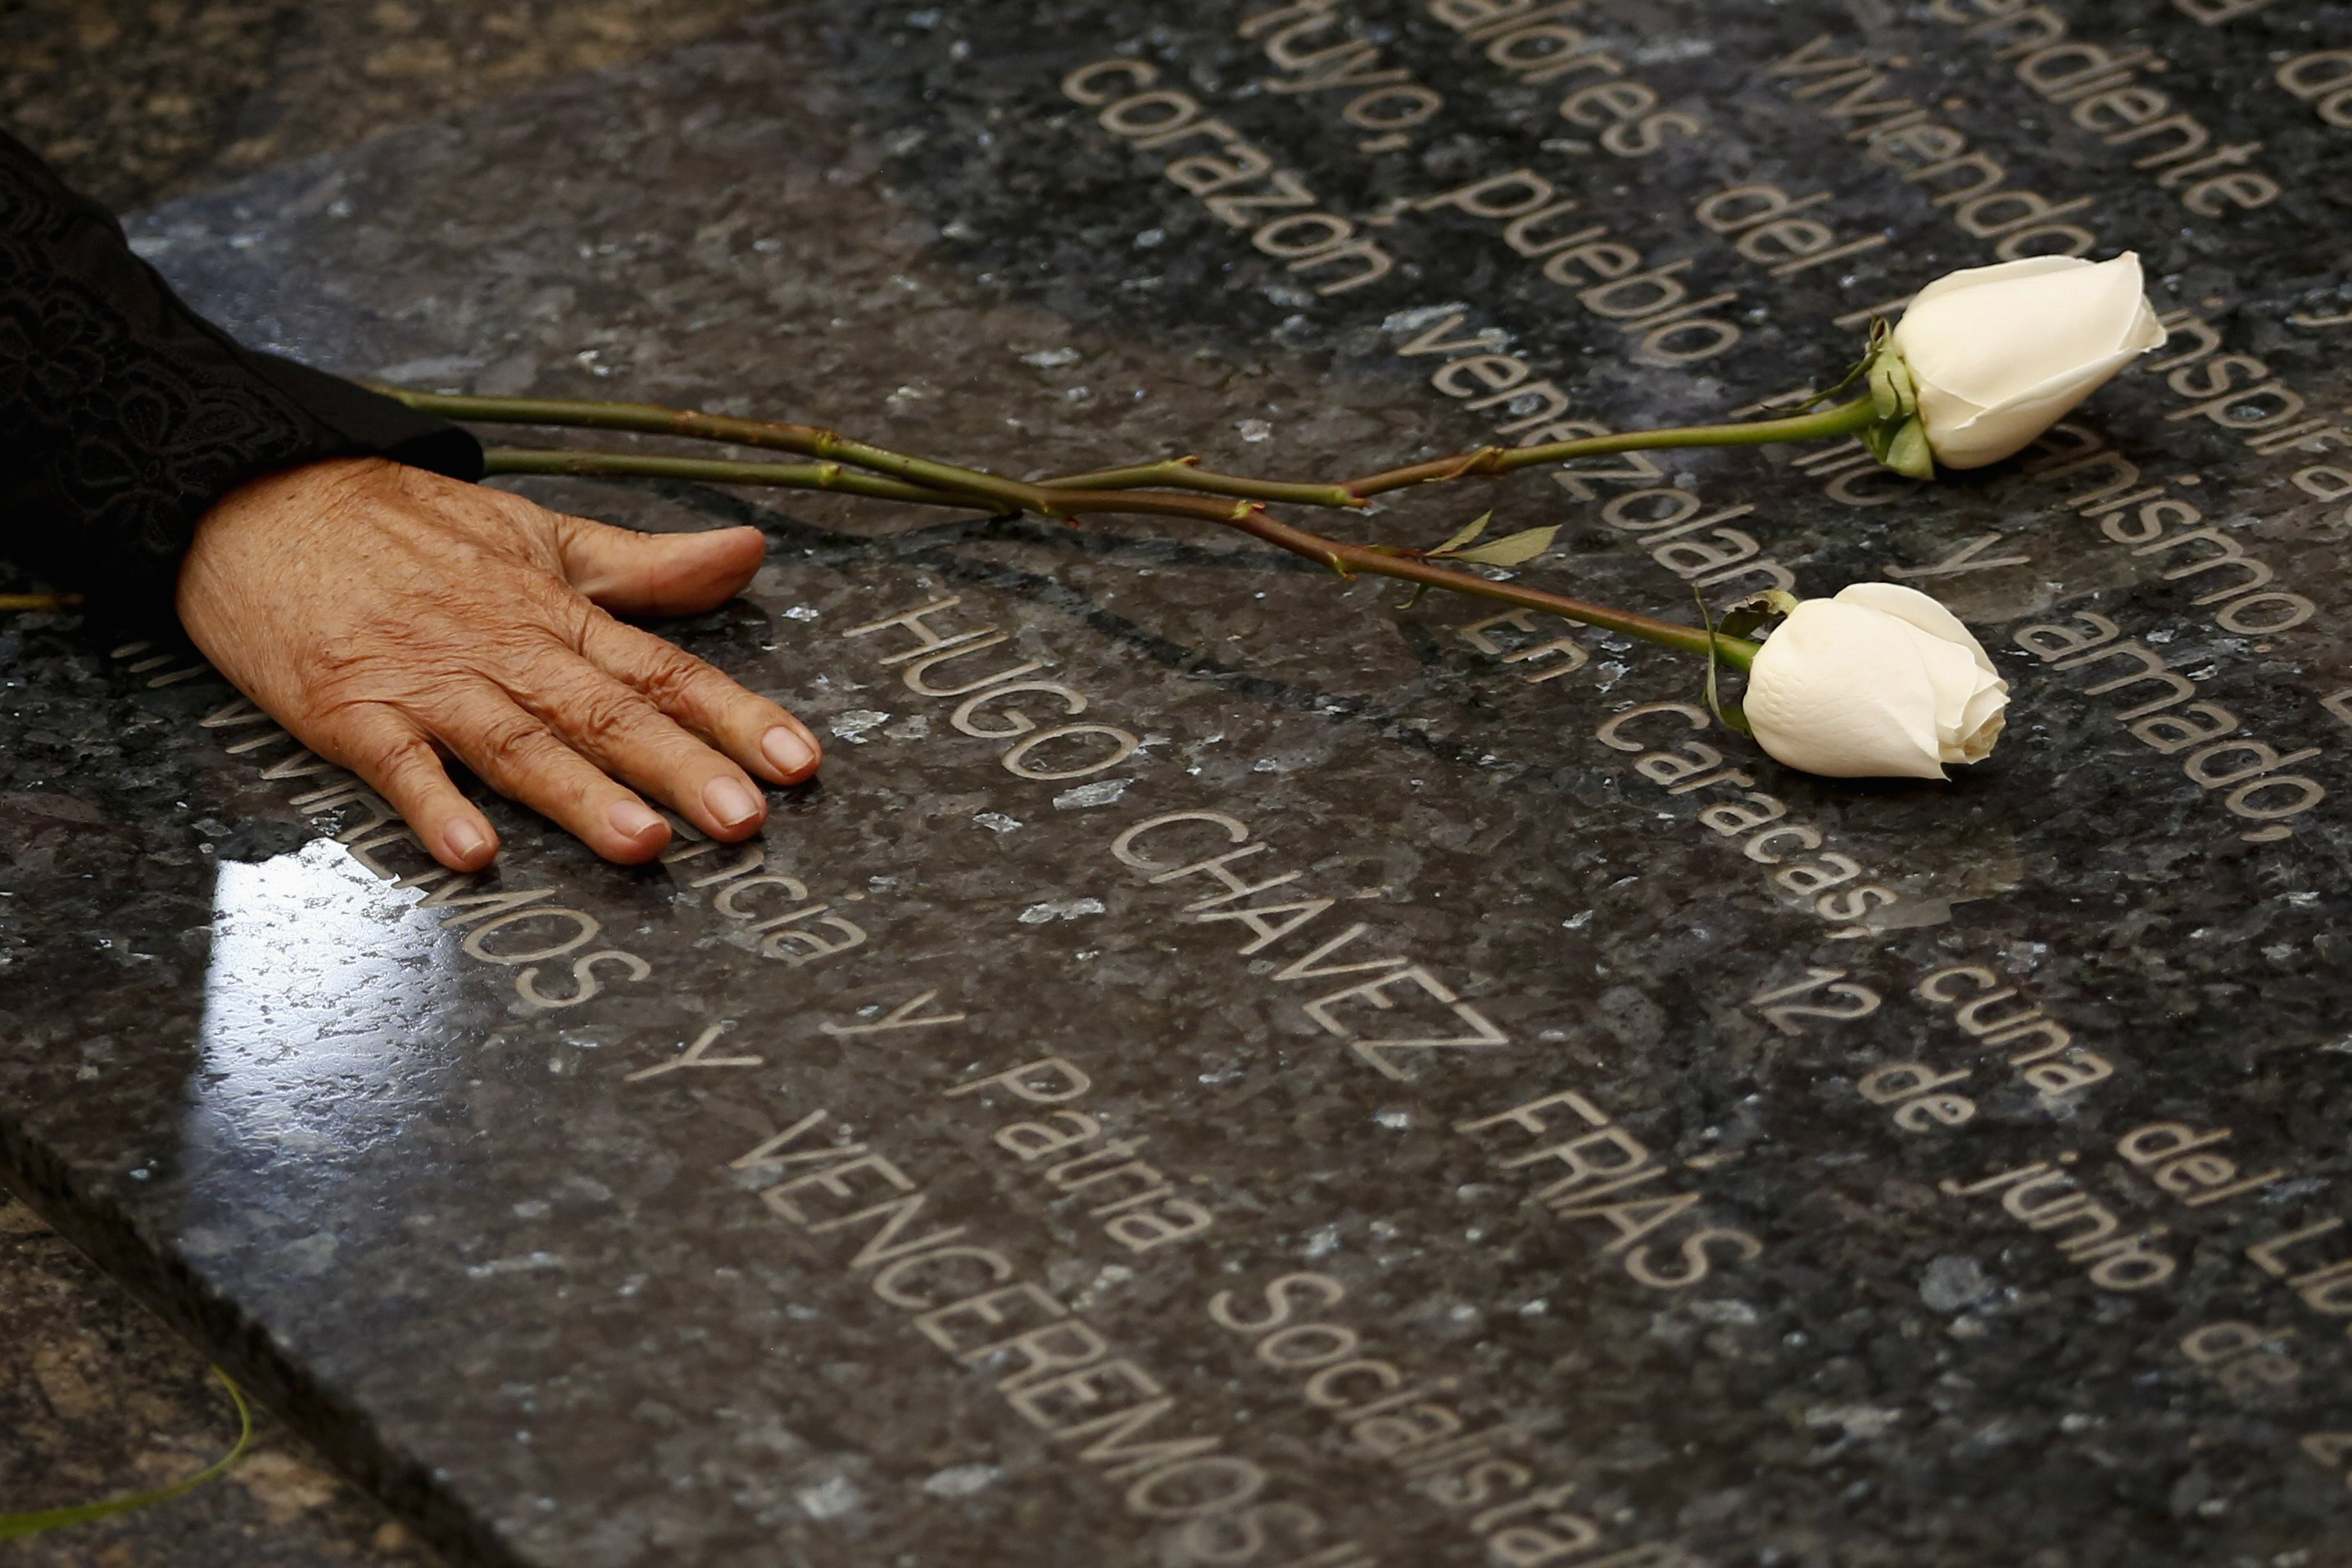 Elena Frias, mother of Venezuela's late president Hugo Chavez, puts flowers over his tomb during the first anniversary of his death in Caracas, March 5, 2014.